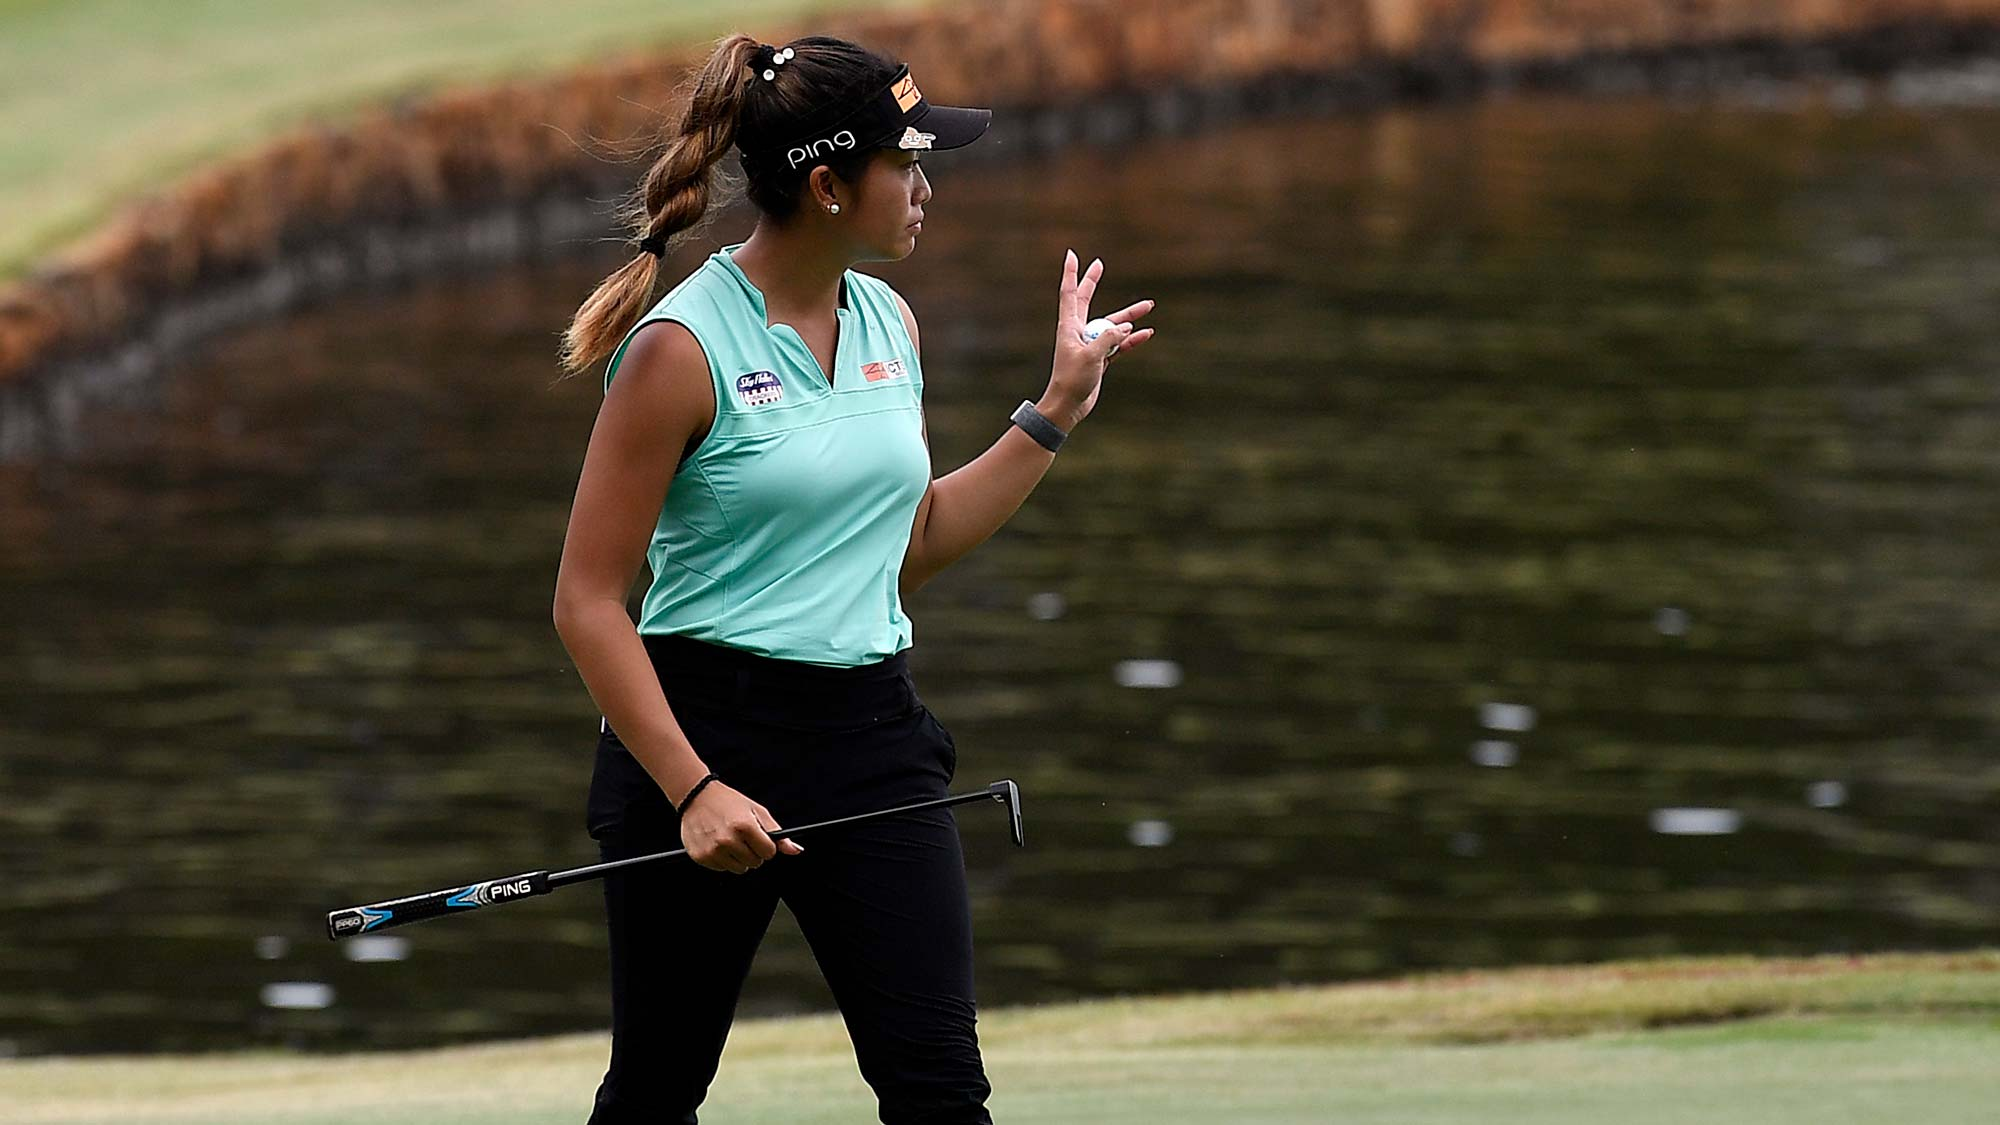 Bianca Pagdanganan Could Be The Future Of The Womens Game   LPGA   Ladies Professional Golf Association